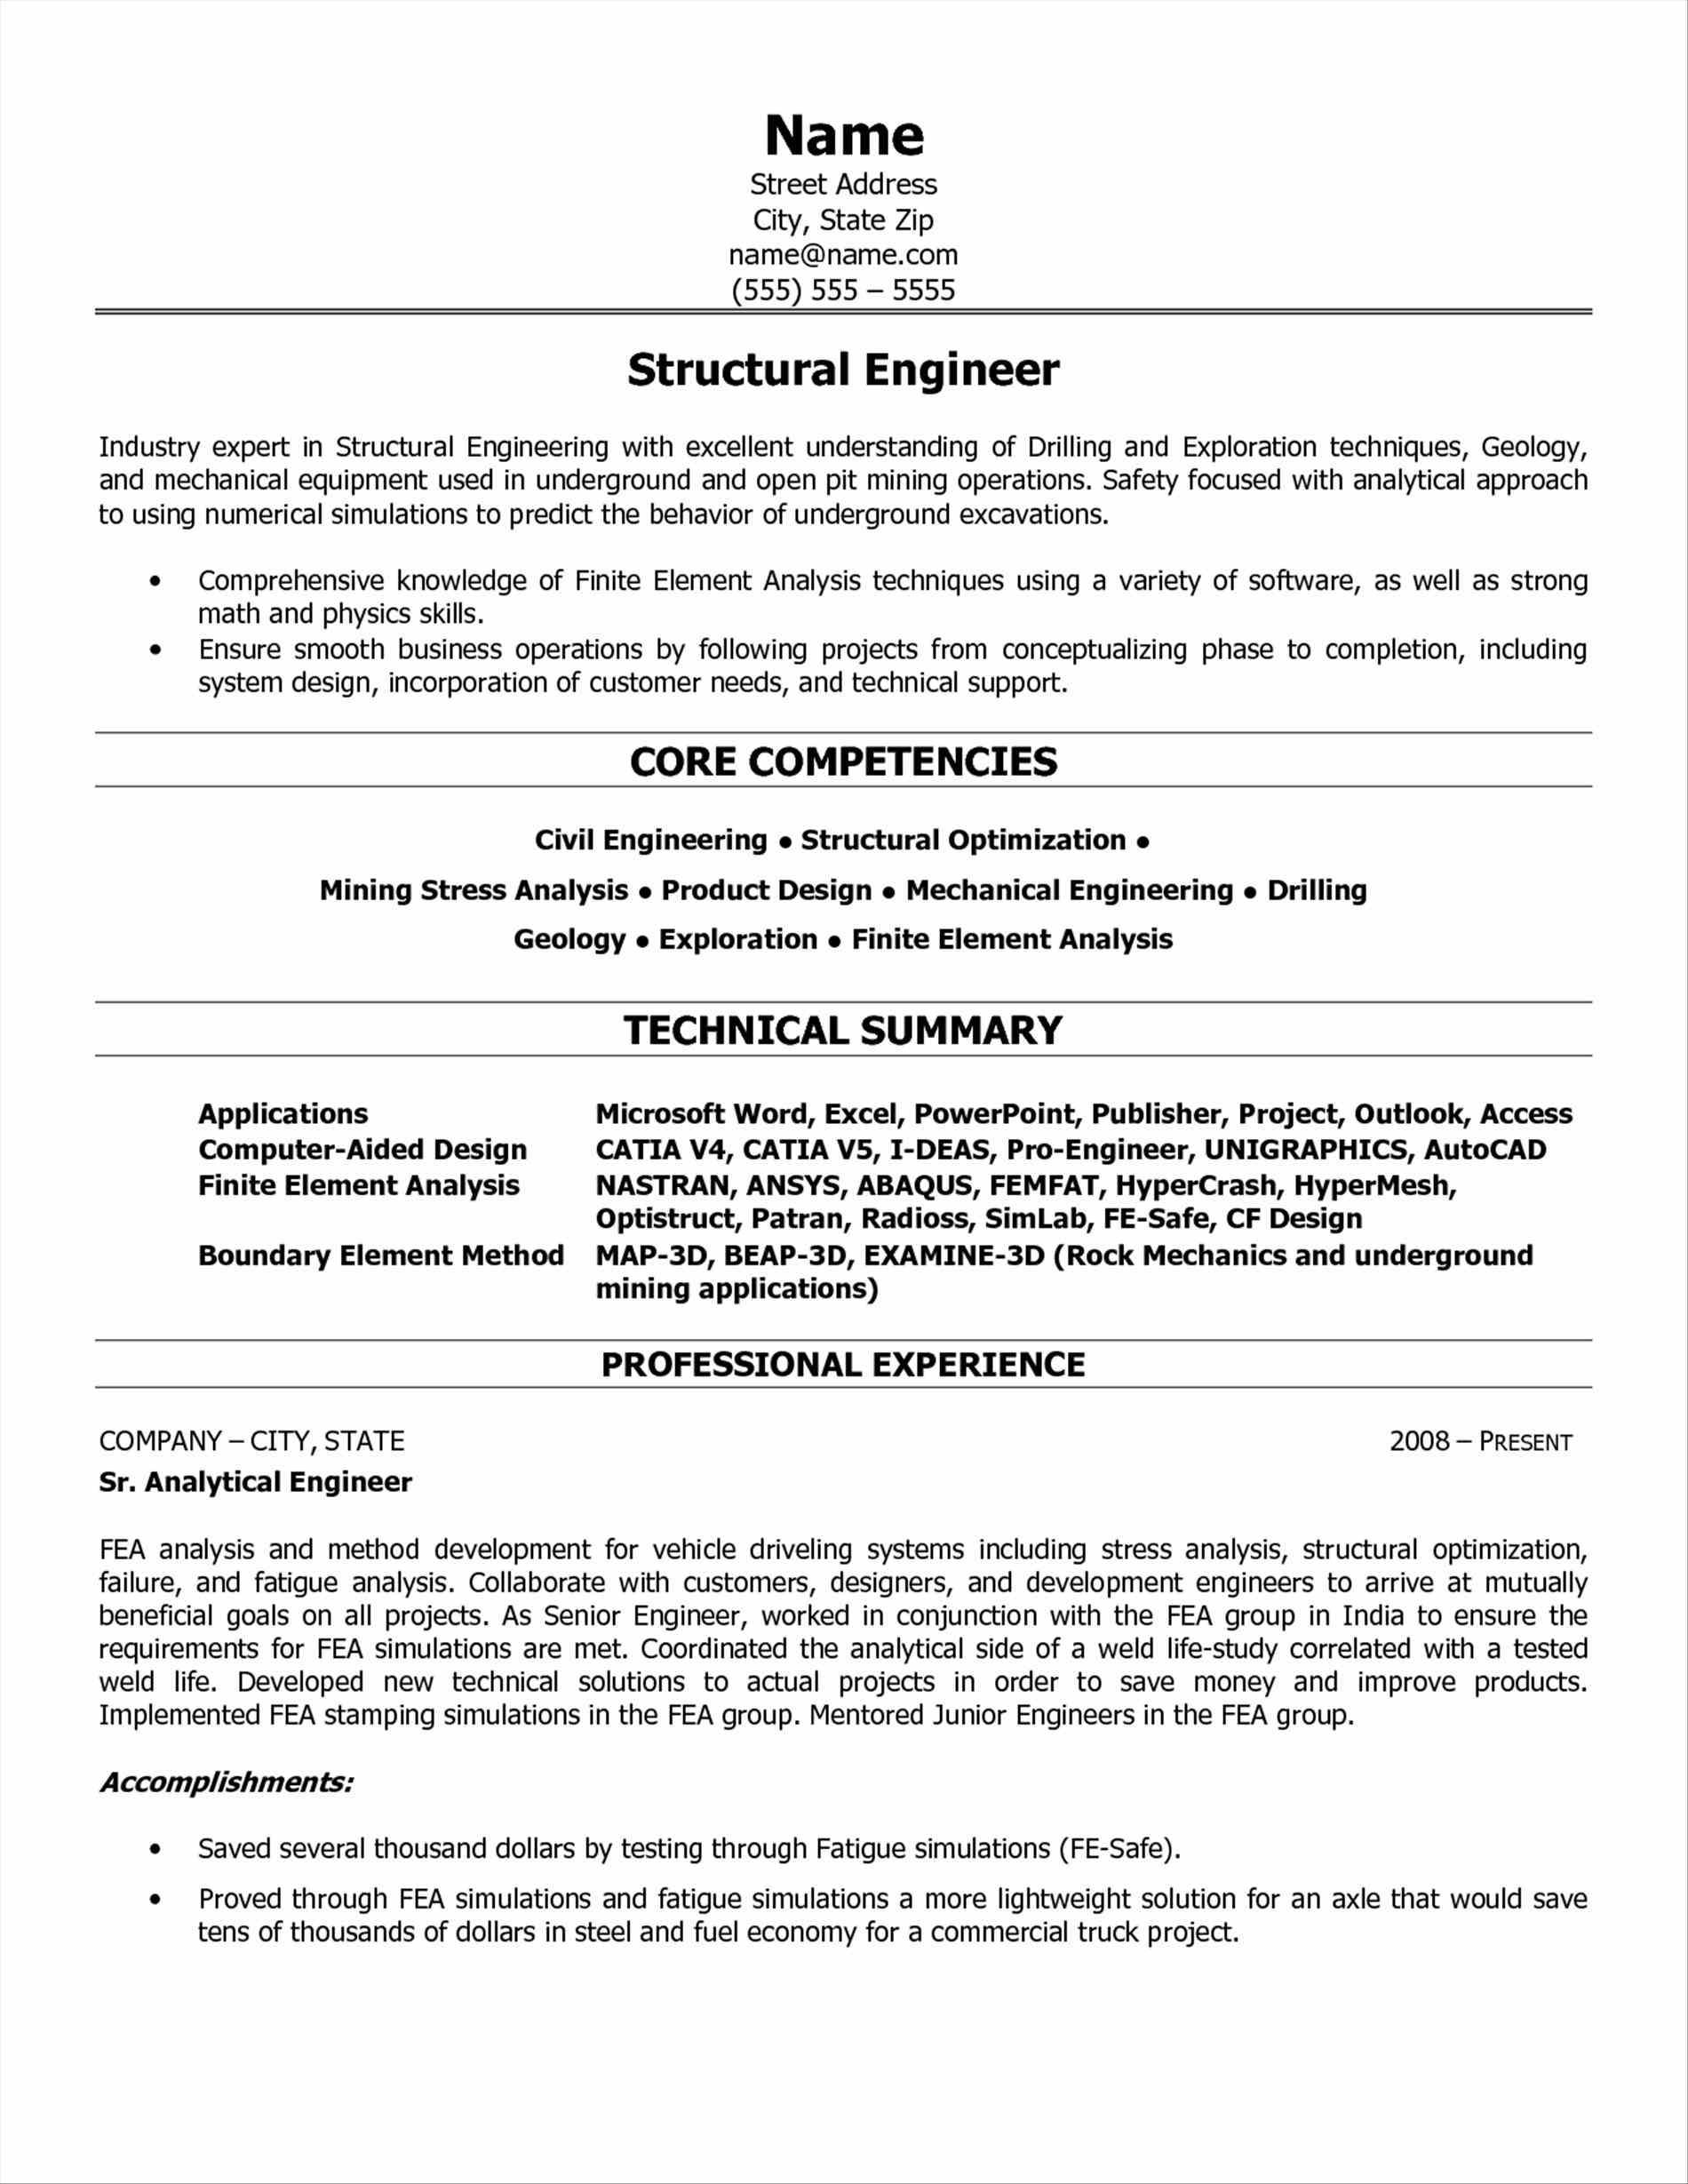 Perfect Cover Letter Sle Engineer Pdf 28 Images Sales Engineer Resume Doc  Mechanical Sales Engineer